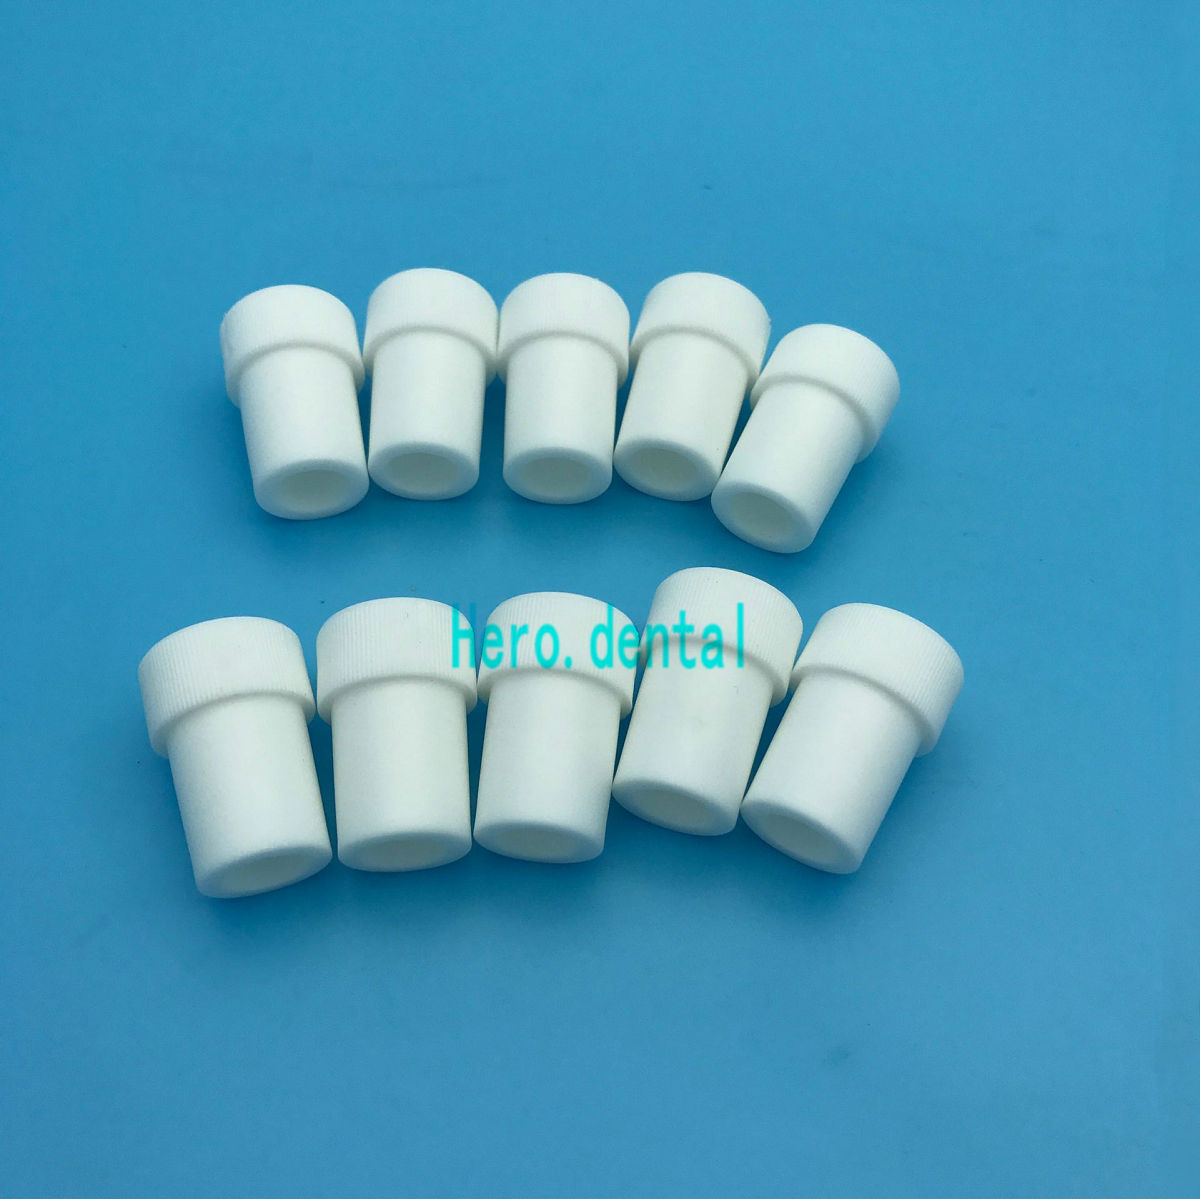 10 Pcs Dental Suction Tube Convertor Saliva Ejector Suction Adaptor Autoclavable